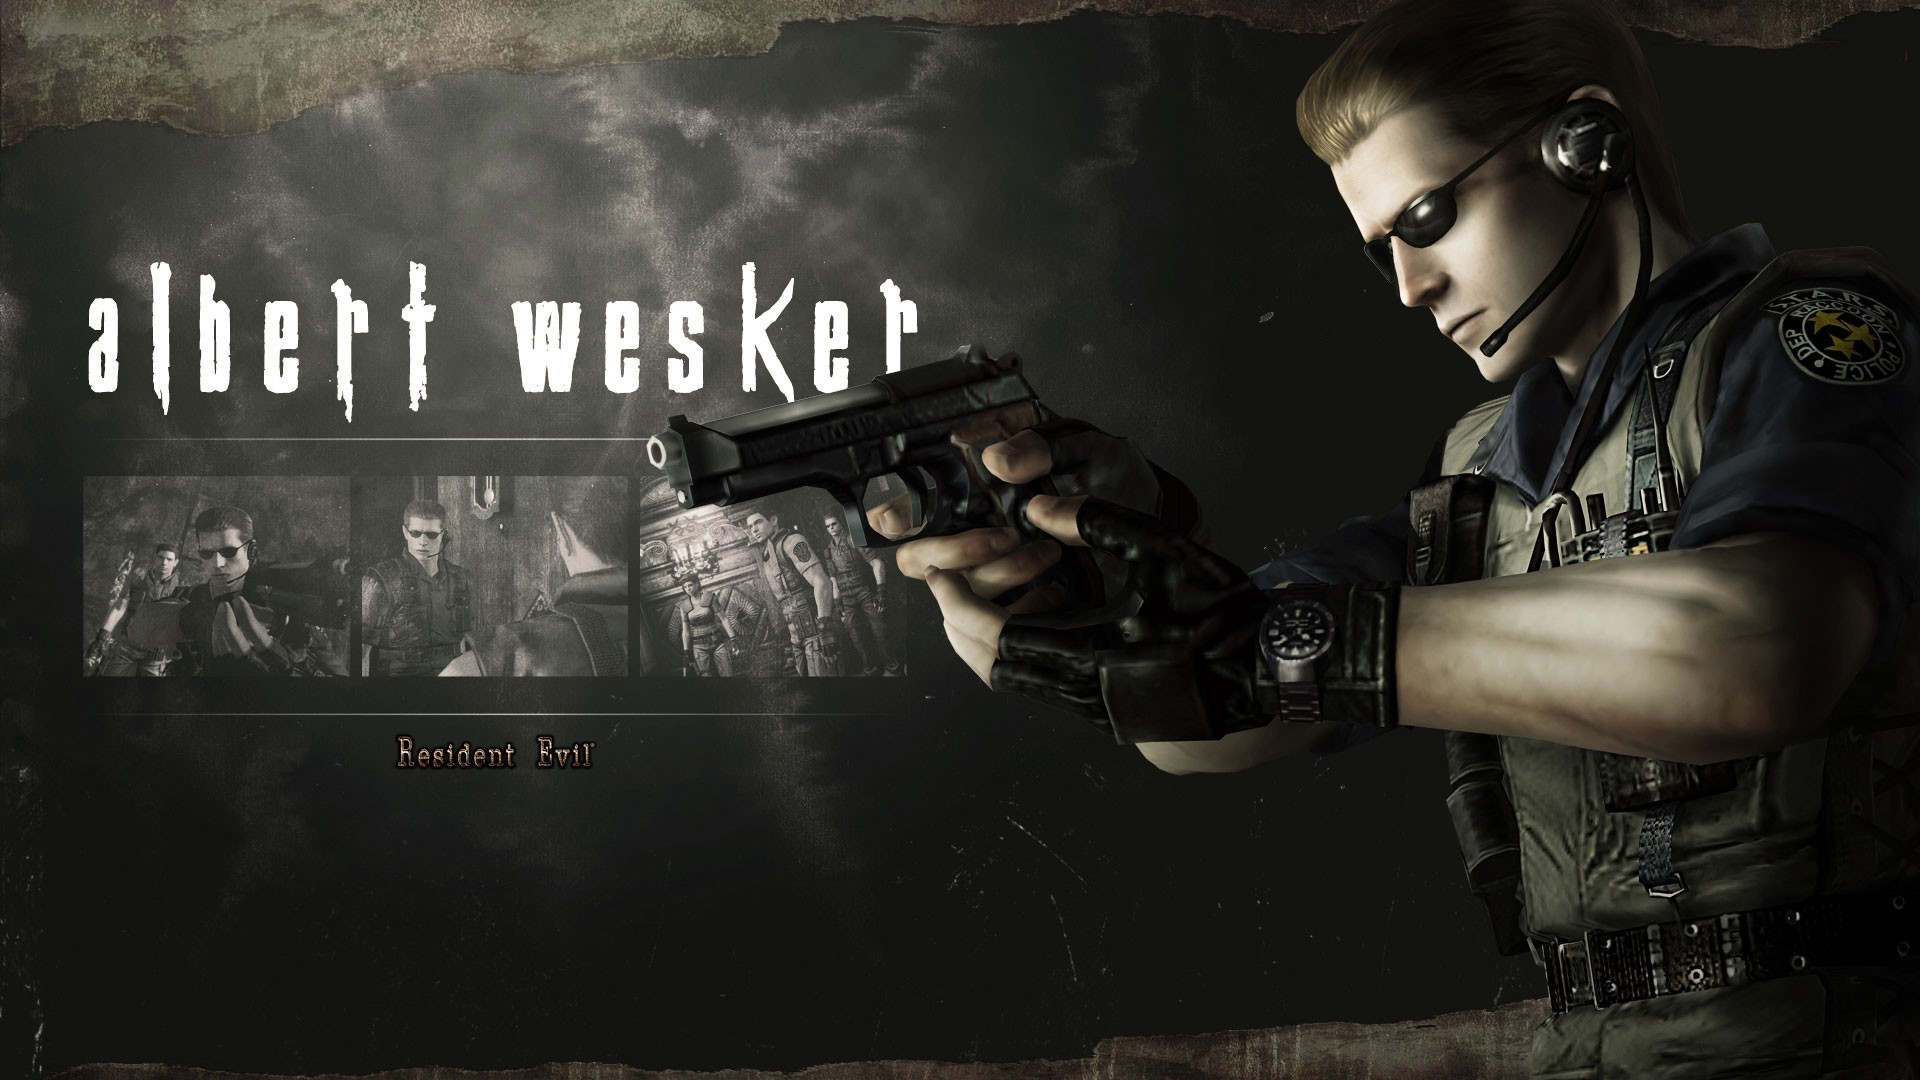 Res: 1920x1080, Albert Wesker from the game Resident Evil HD Remaster